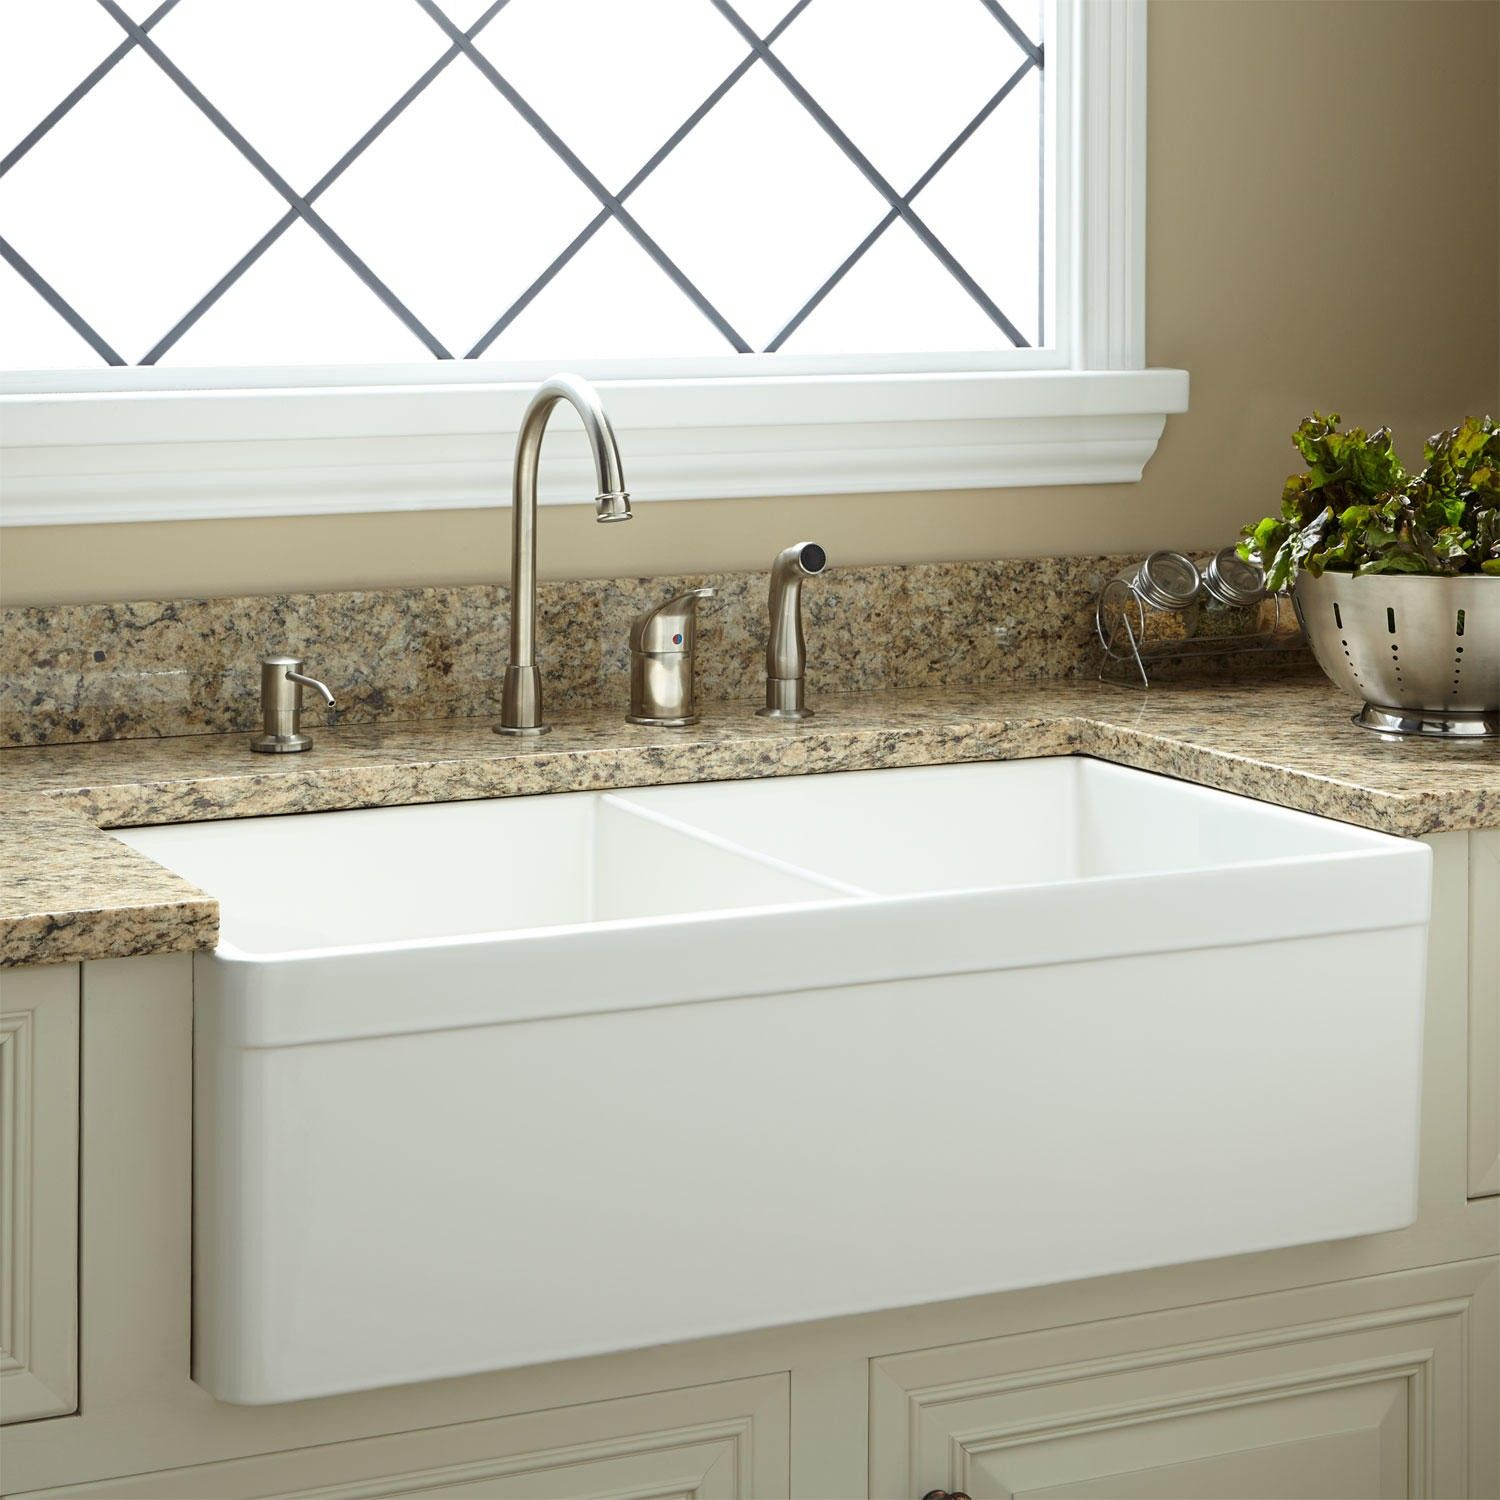 Elegant The White Baldwin Double Bowl Farmhouse Fireclay Sink Is The Perfect Fit  For A Busy Kitchen.